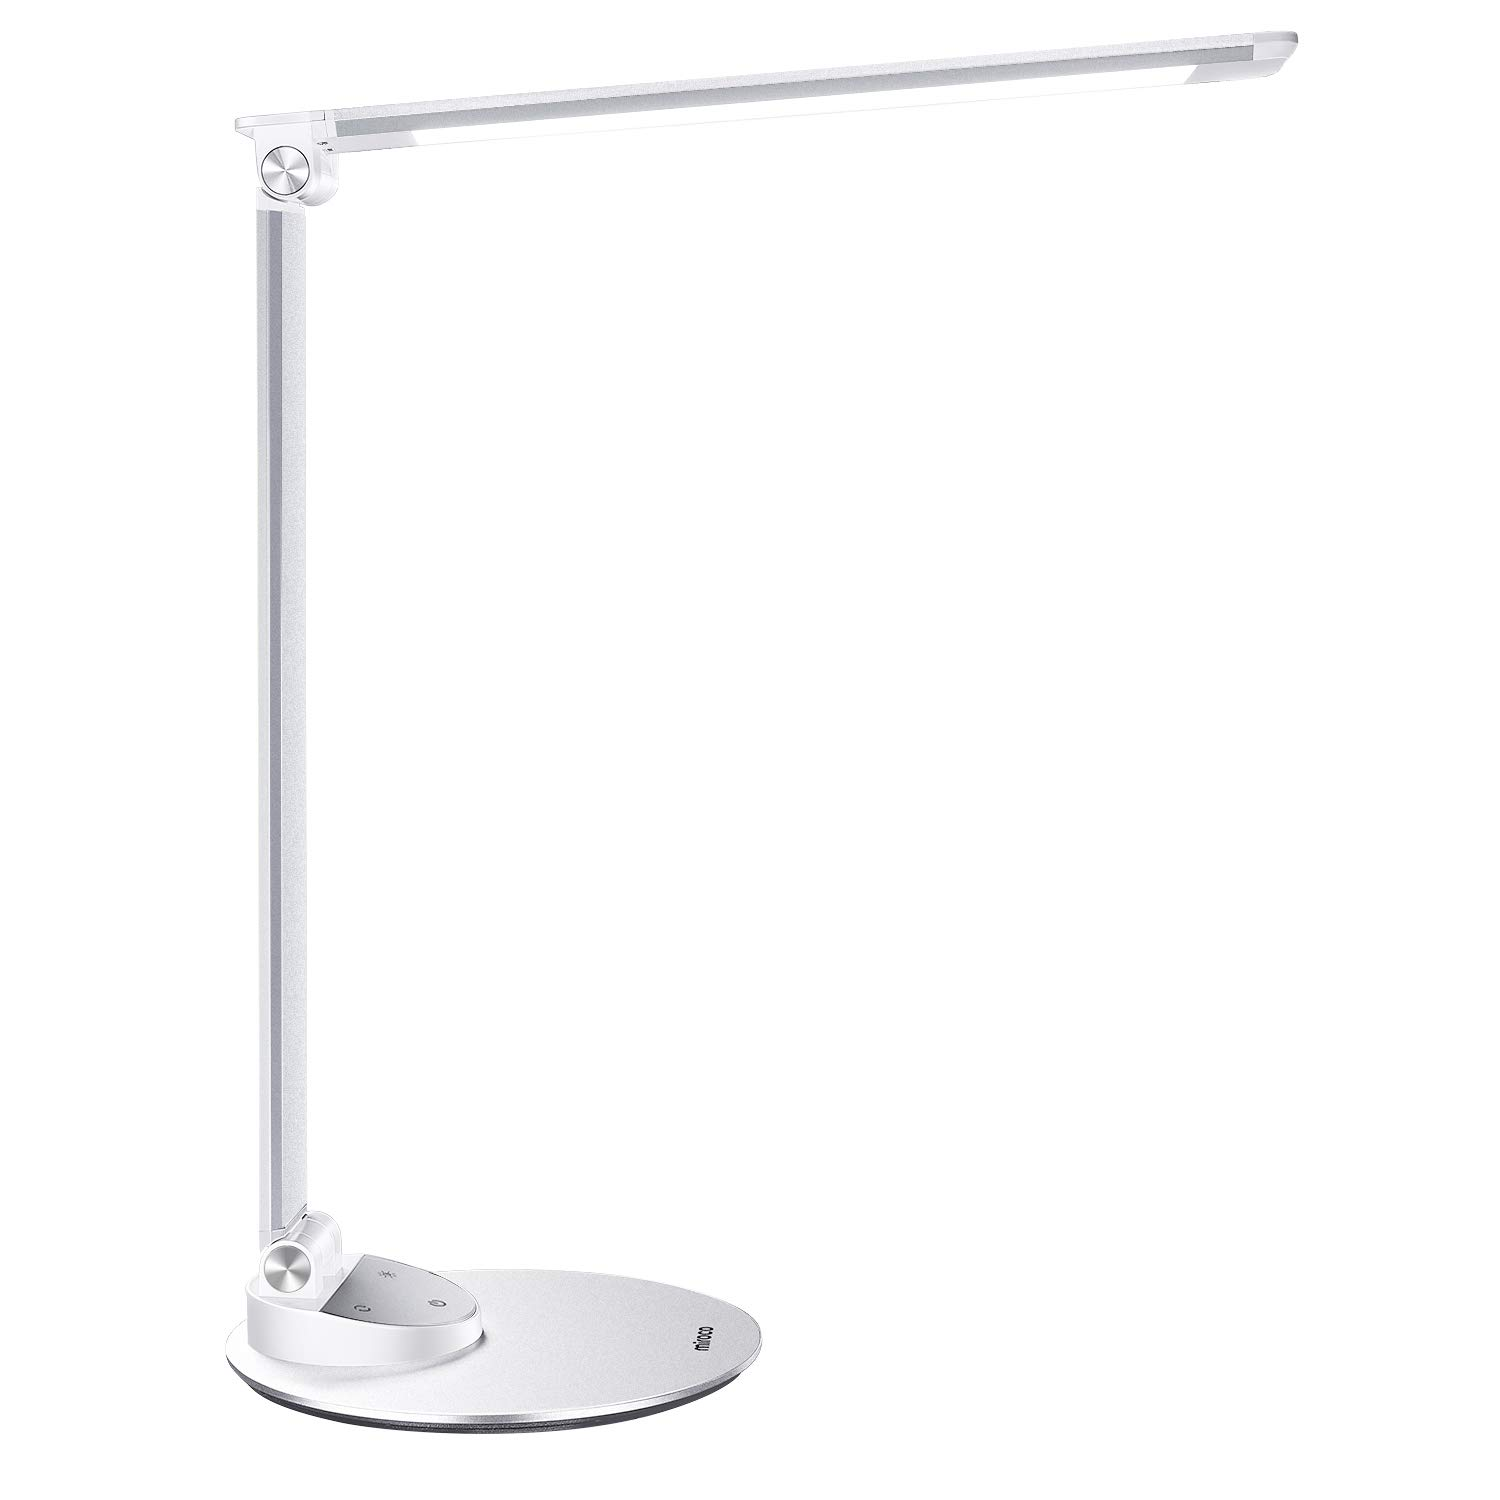 LED Desk Lamp, Miroco Aluminum Alloy Table Lamps with USB Charging Port, Memory Function, 5 Color Temperatures, 5 Brightness Levels, Touch Switch, Eye-Caring and Energy Saving